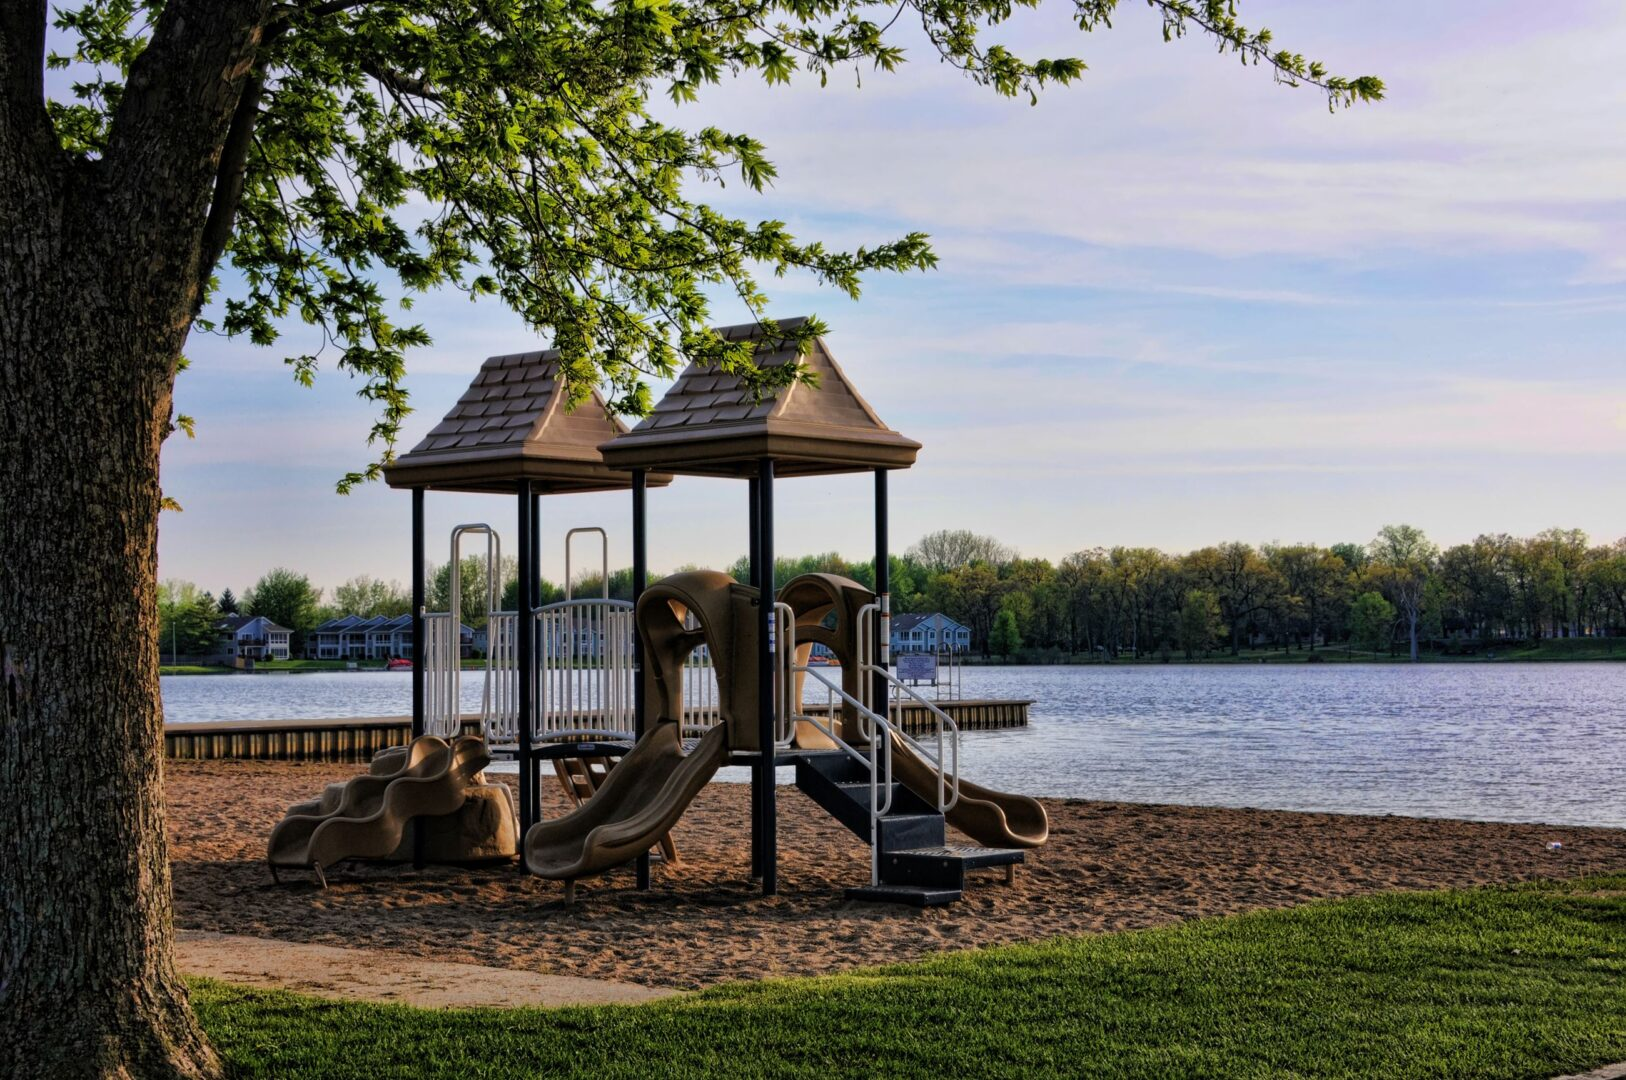 Pike Lake Beach offers playgrounds among other amenities